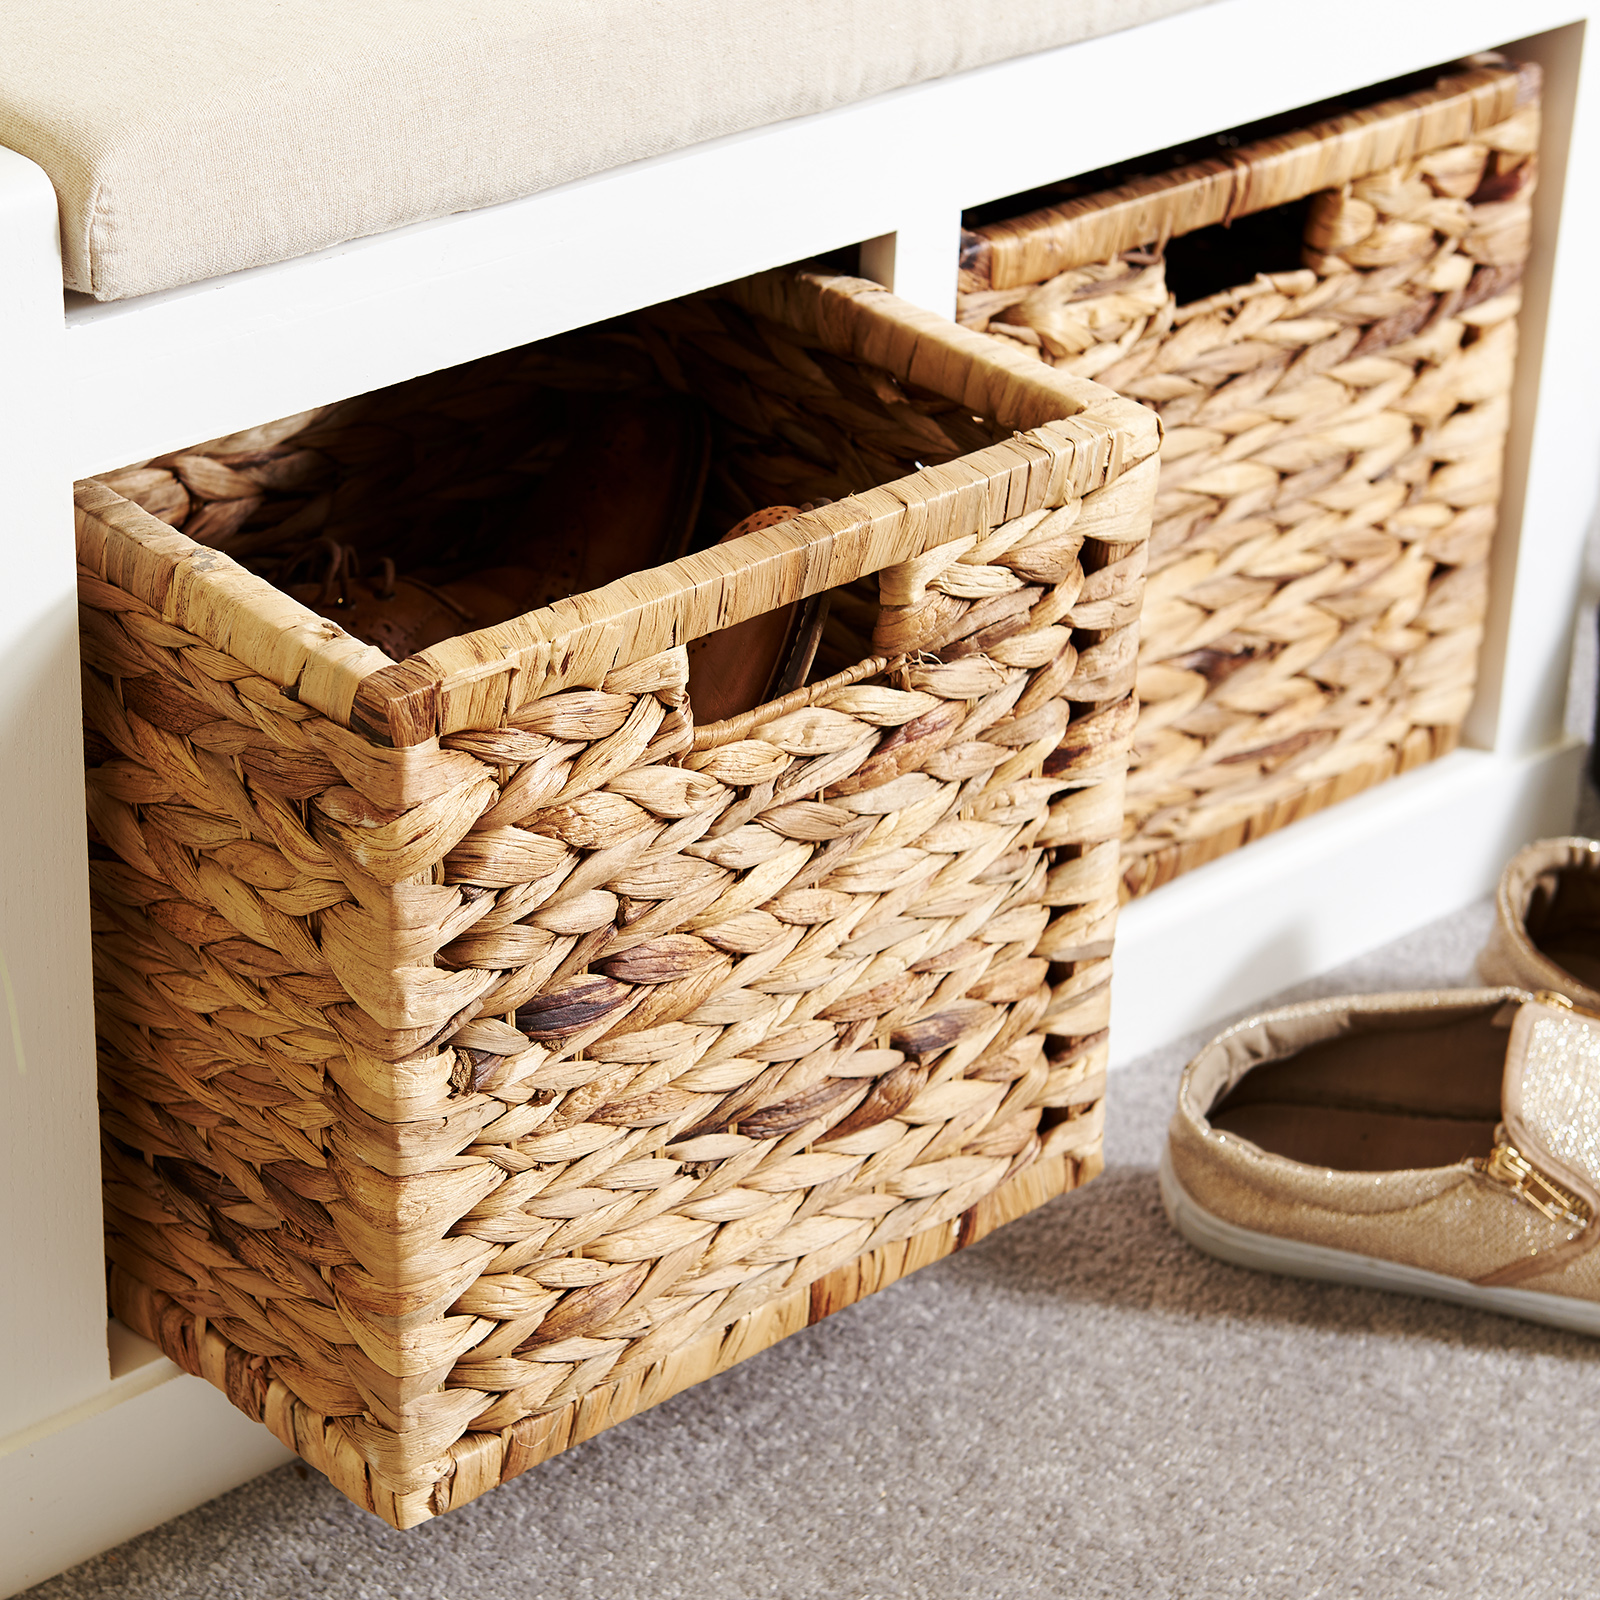 Strange Details About Hartleys 2 Drawer Hallway Storage Bench With Foam Padded Wicker Seat Cushion Pdpeps Interior Chair Design Pdpepsorg